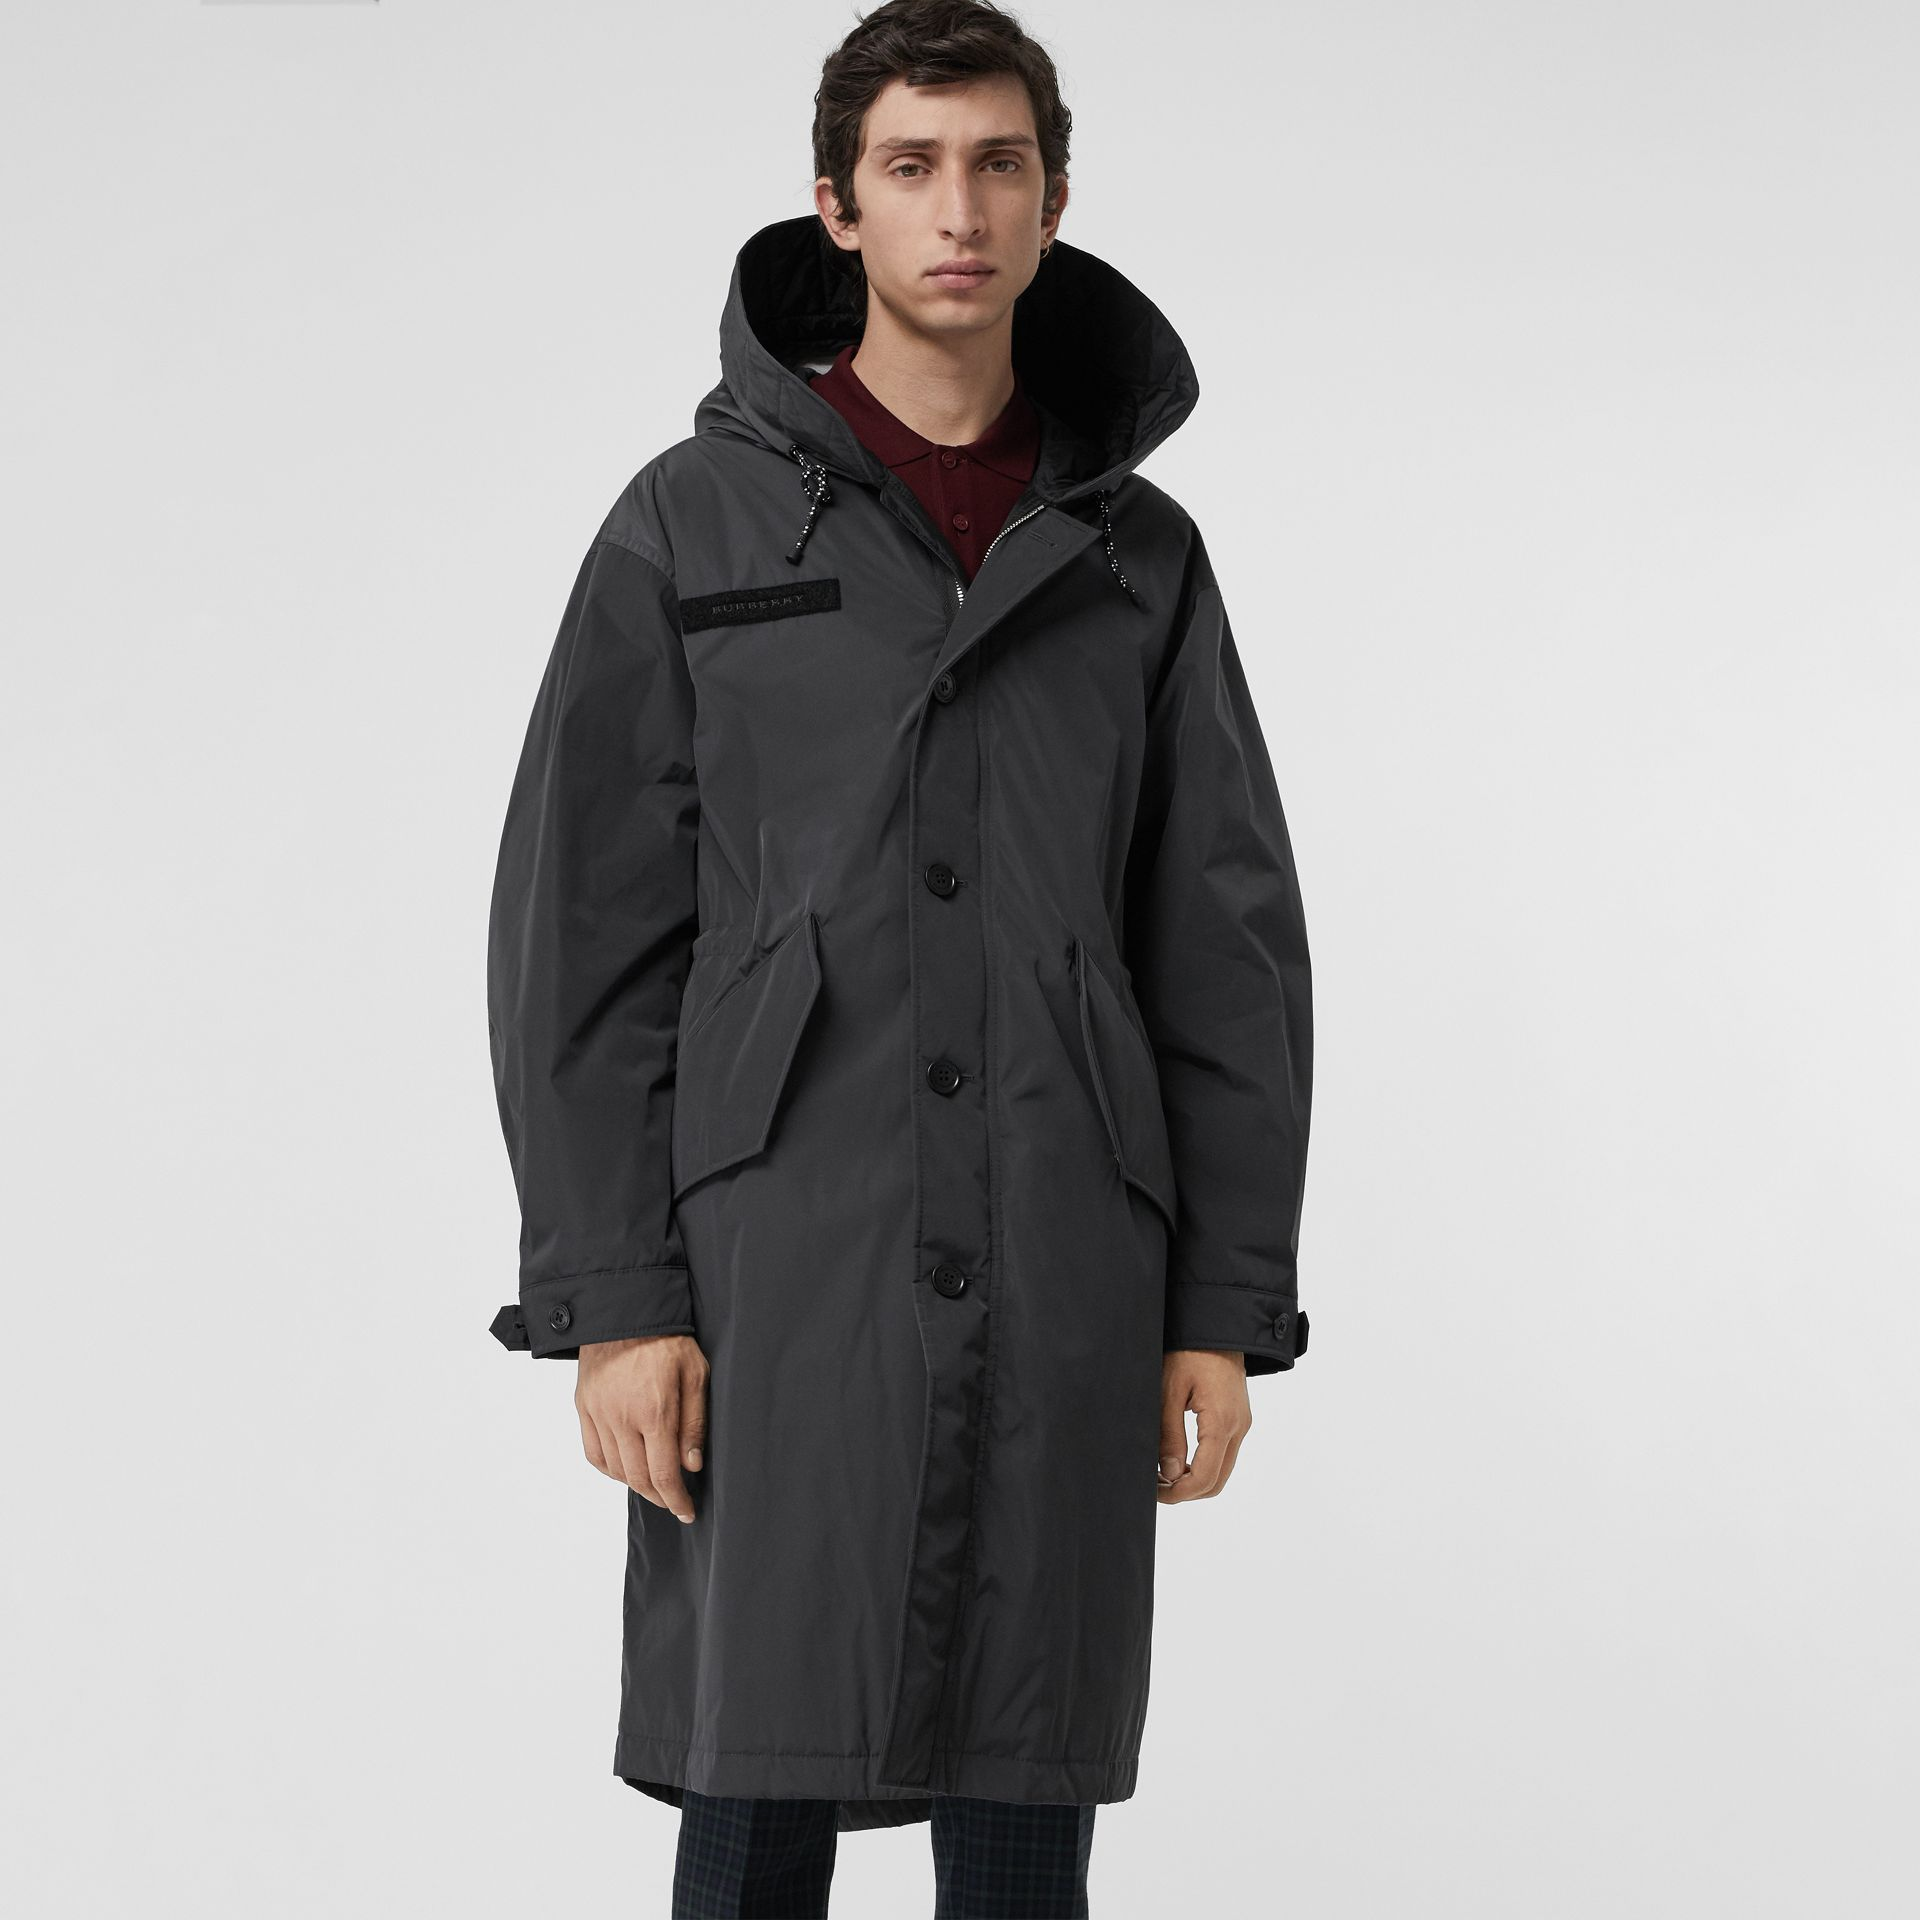 Quilt-lined Technical Nylon Parka in Dark Charcoal - Men | Burberry Canada - gallery image 5